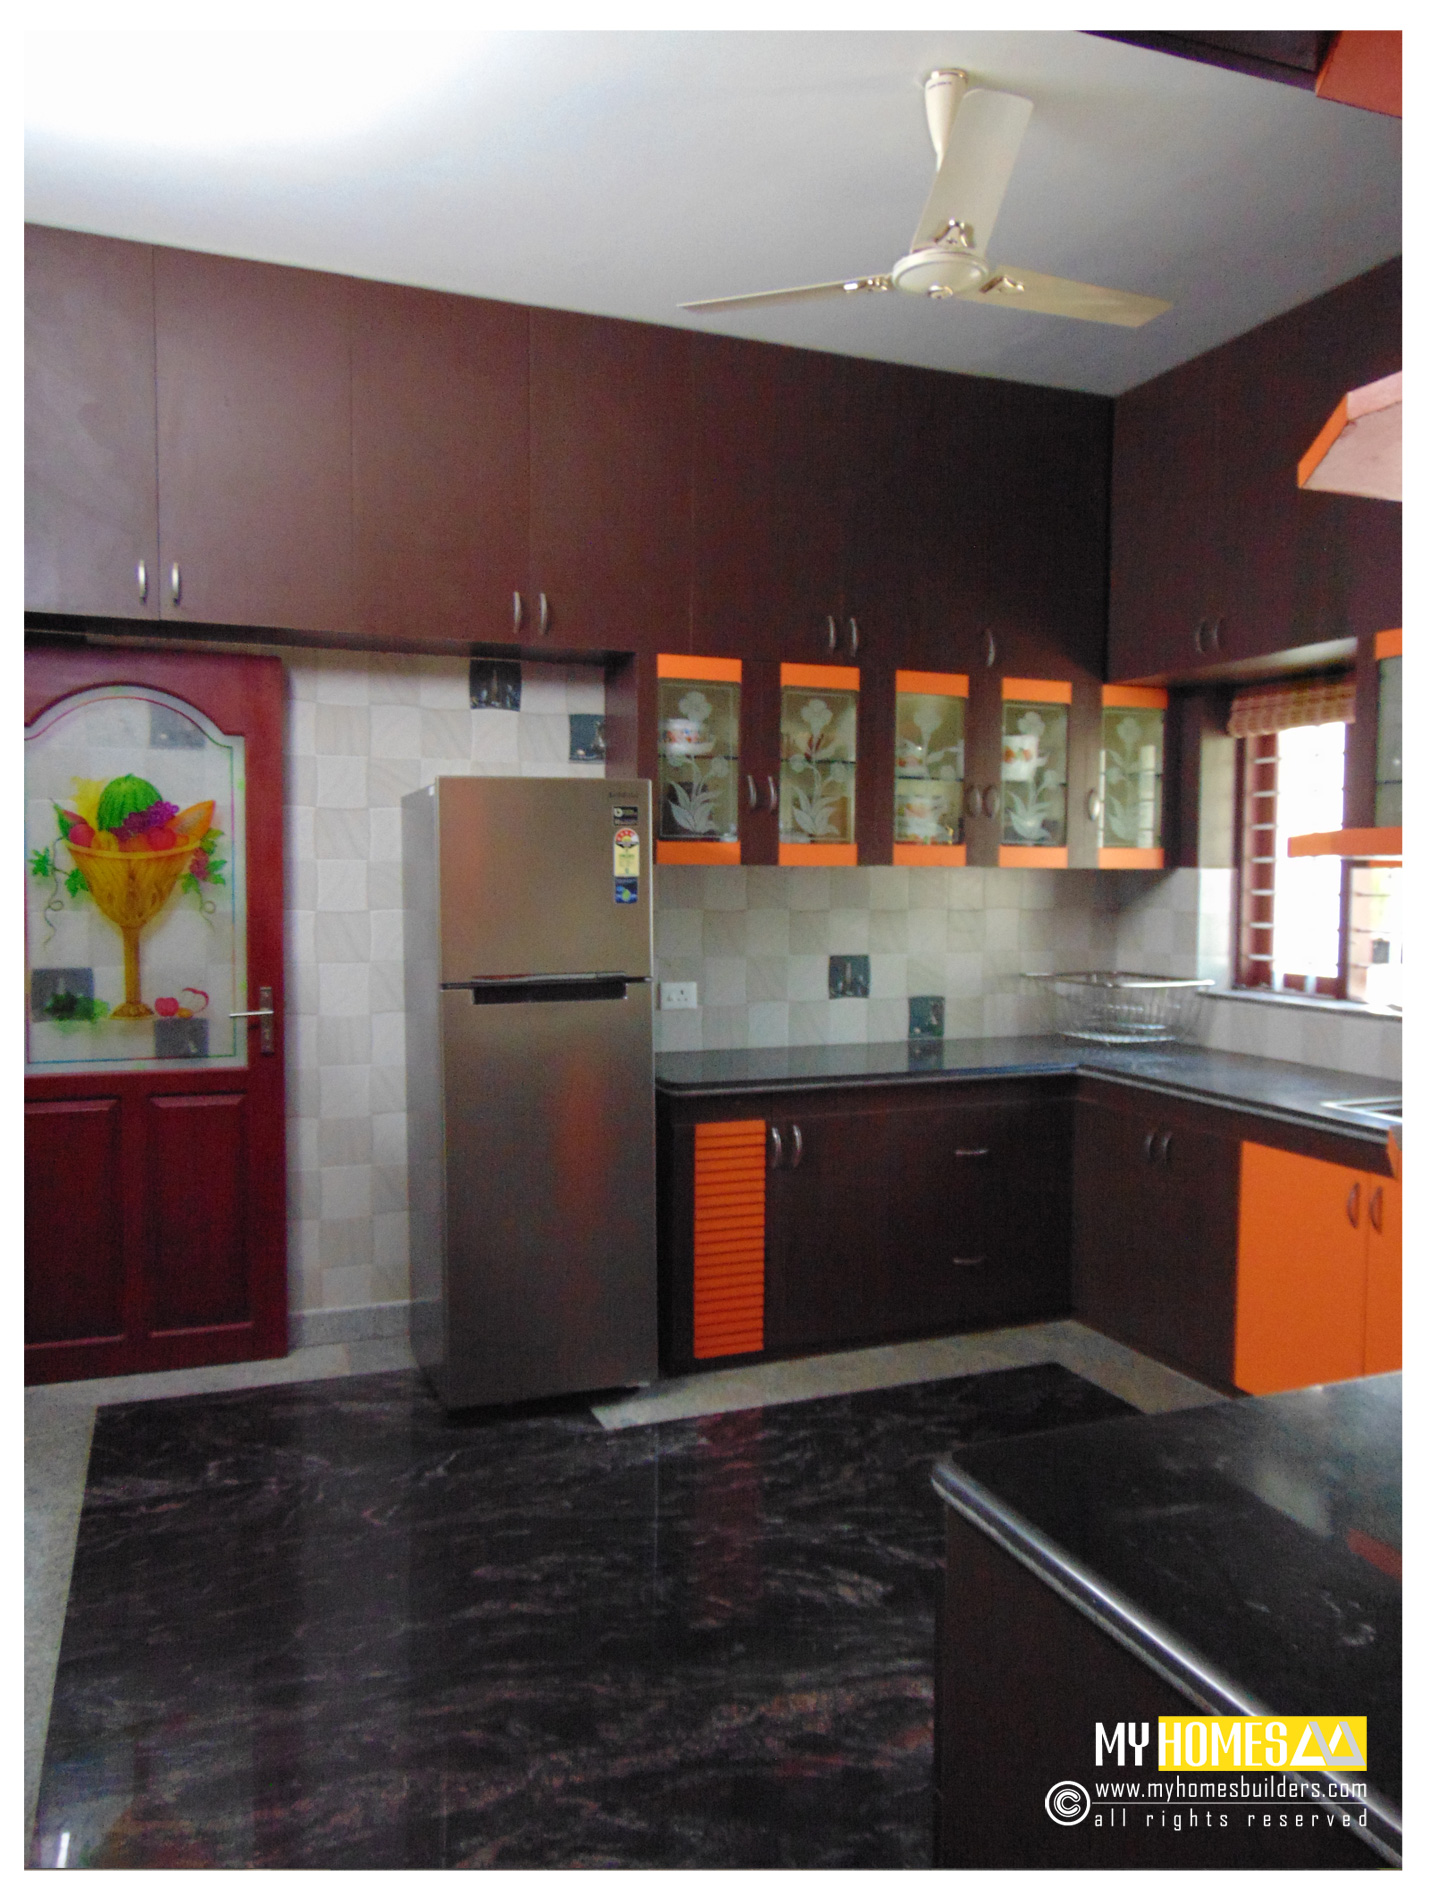 Kerala kitchen designs idea in modular style for house in india - Pics of kitchen designs ...